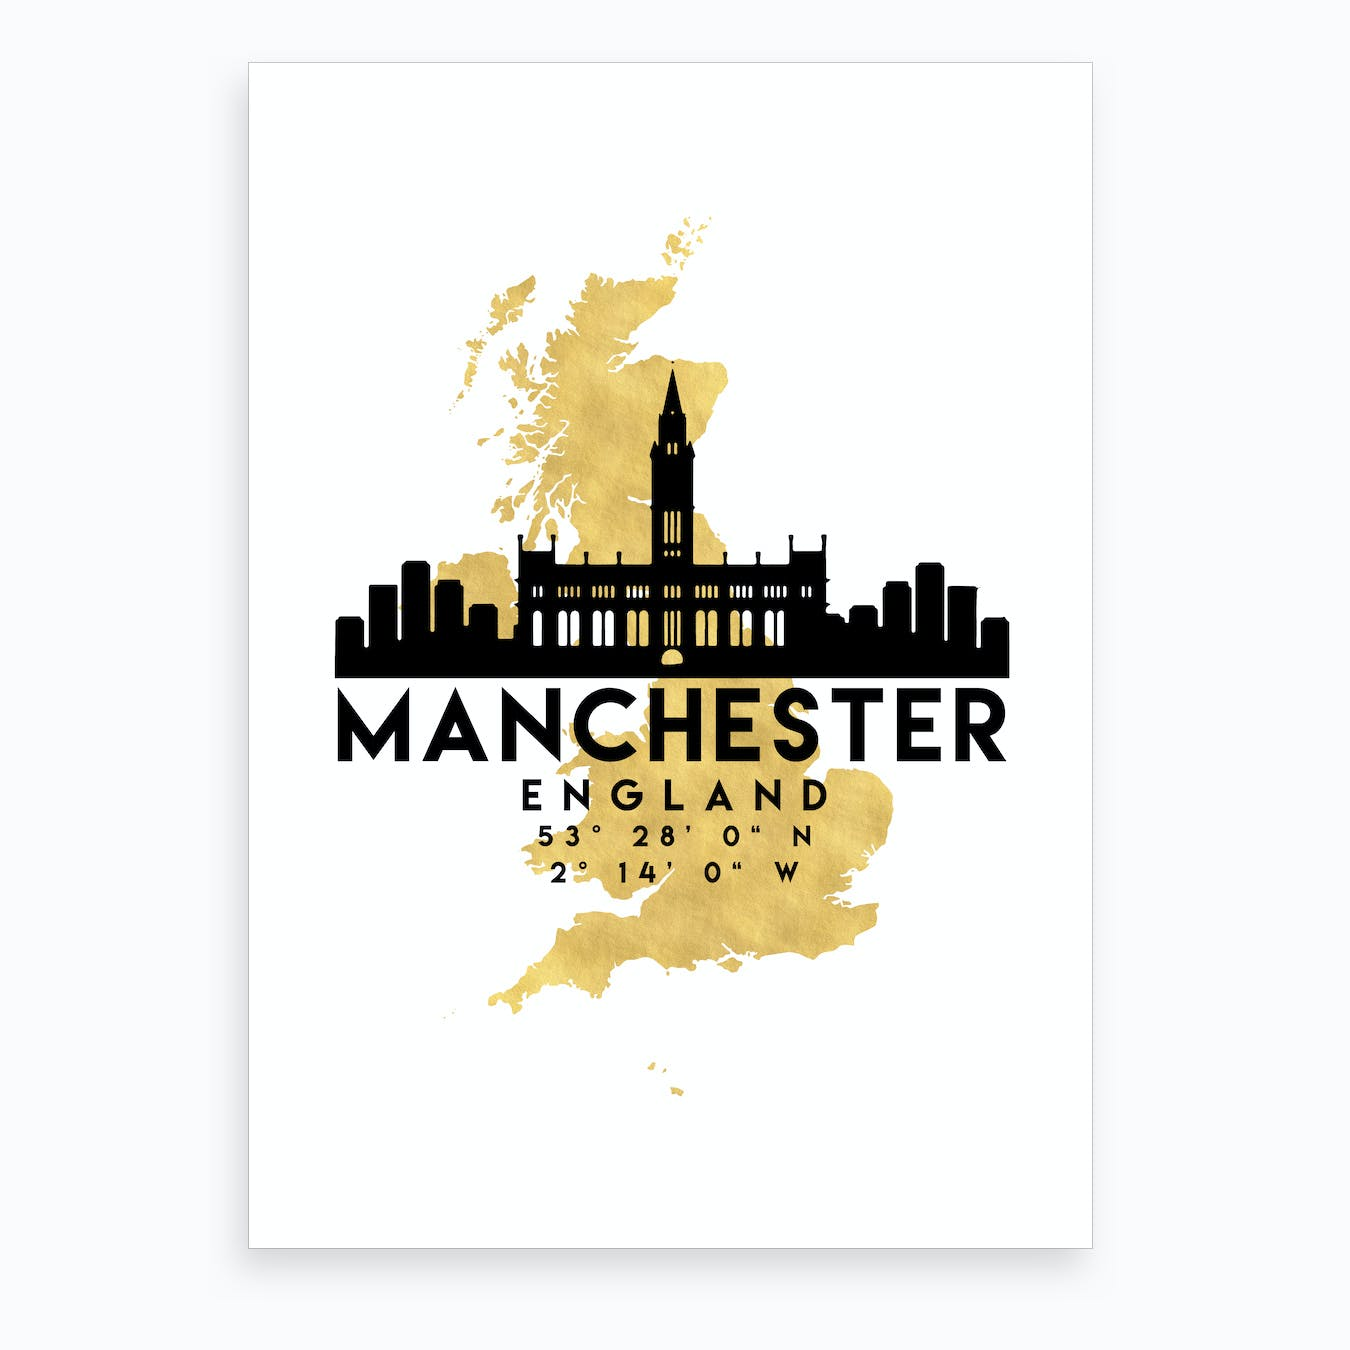 Manchester England Silhouette City Skyline Map Art Print